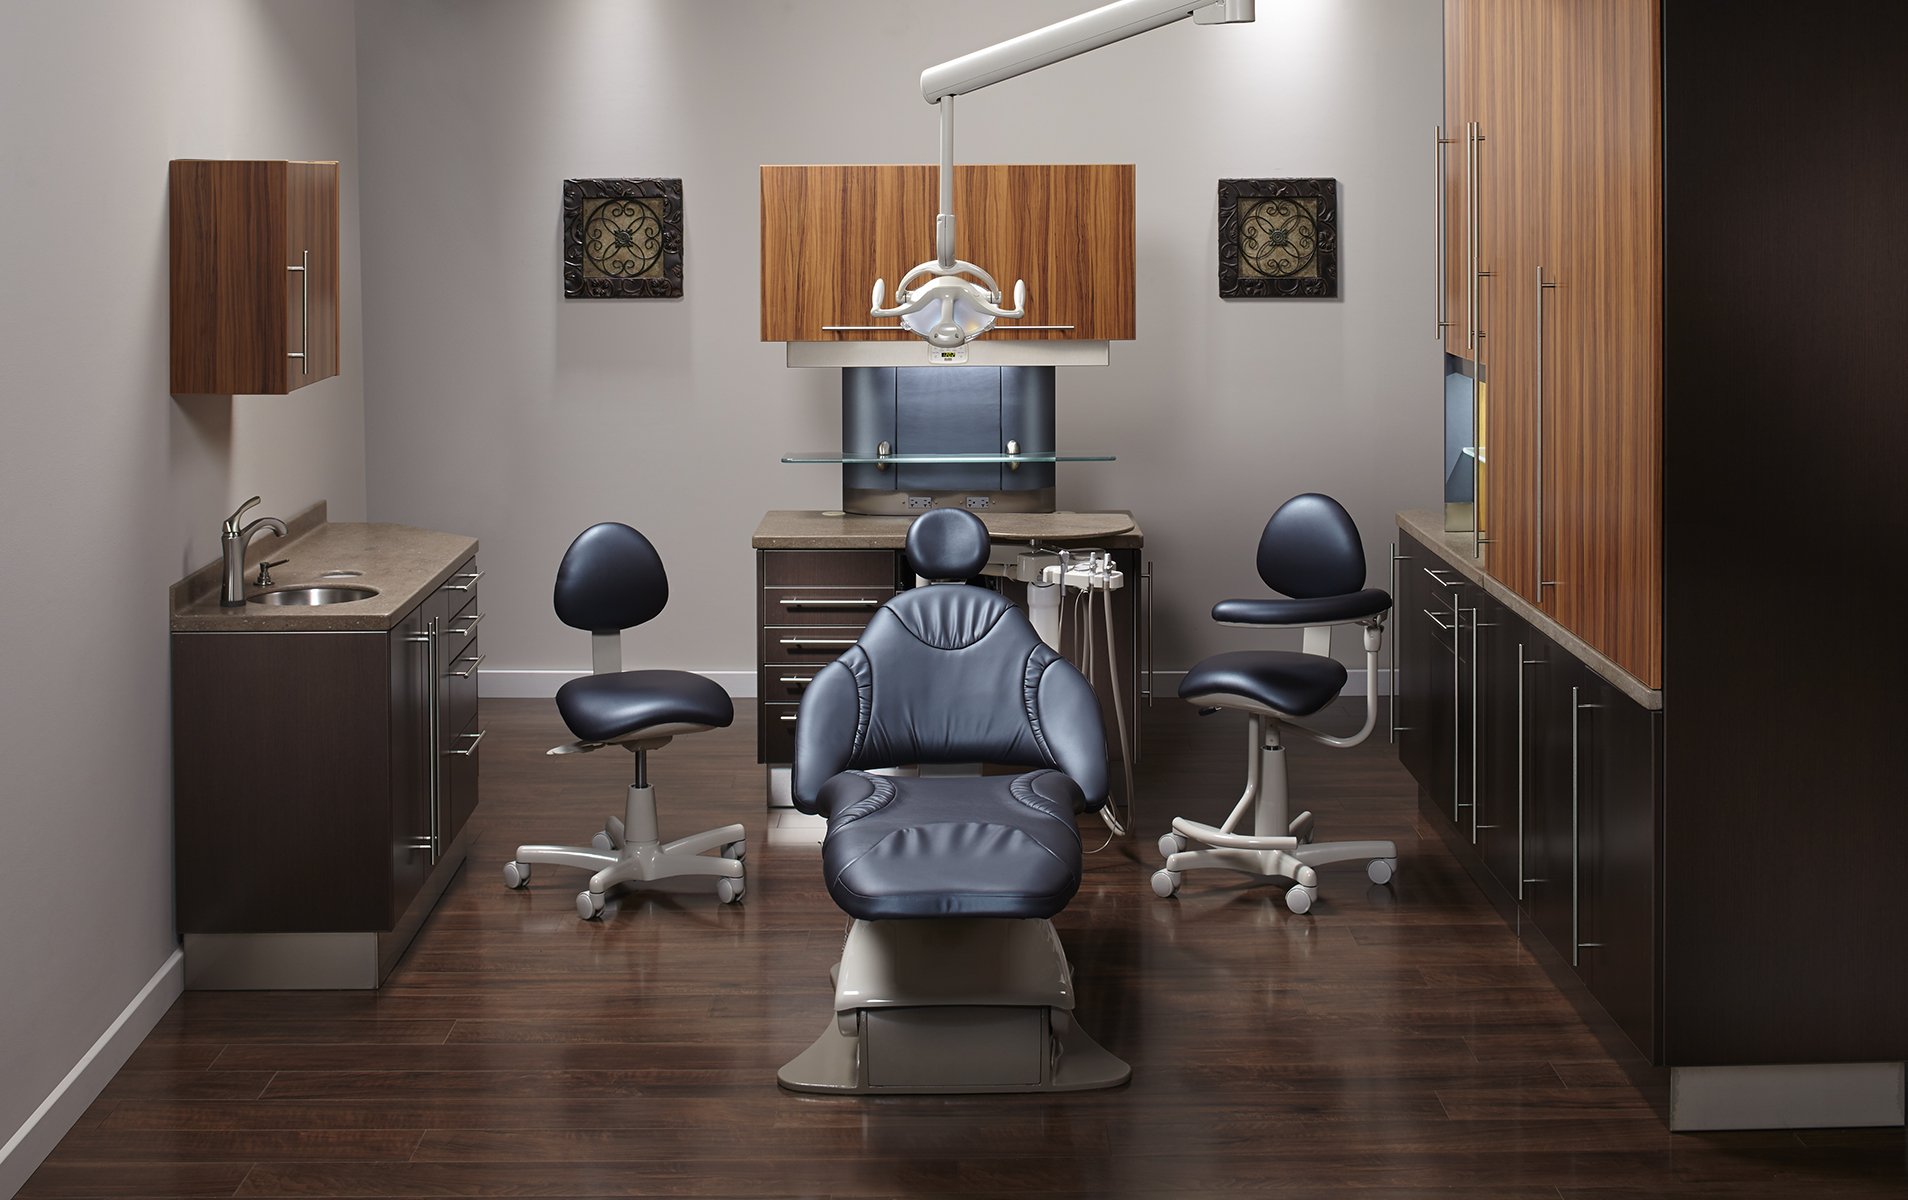 Artizan Dental Cabinetry